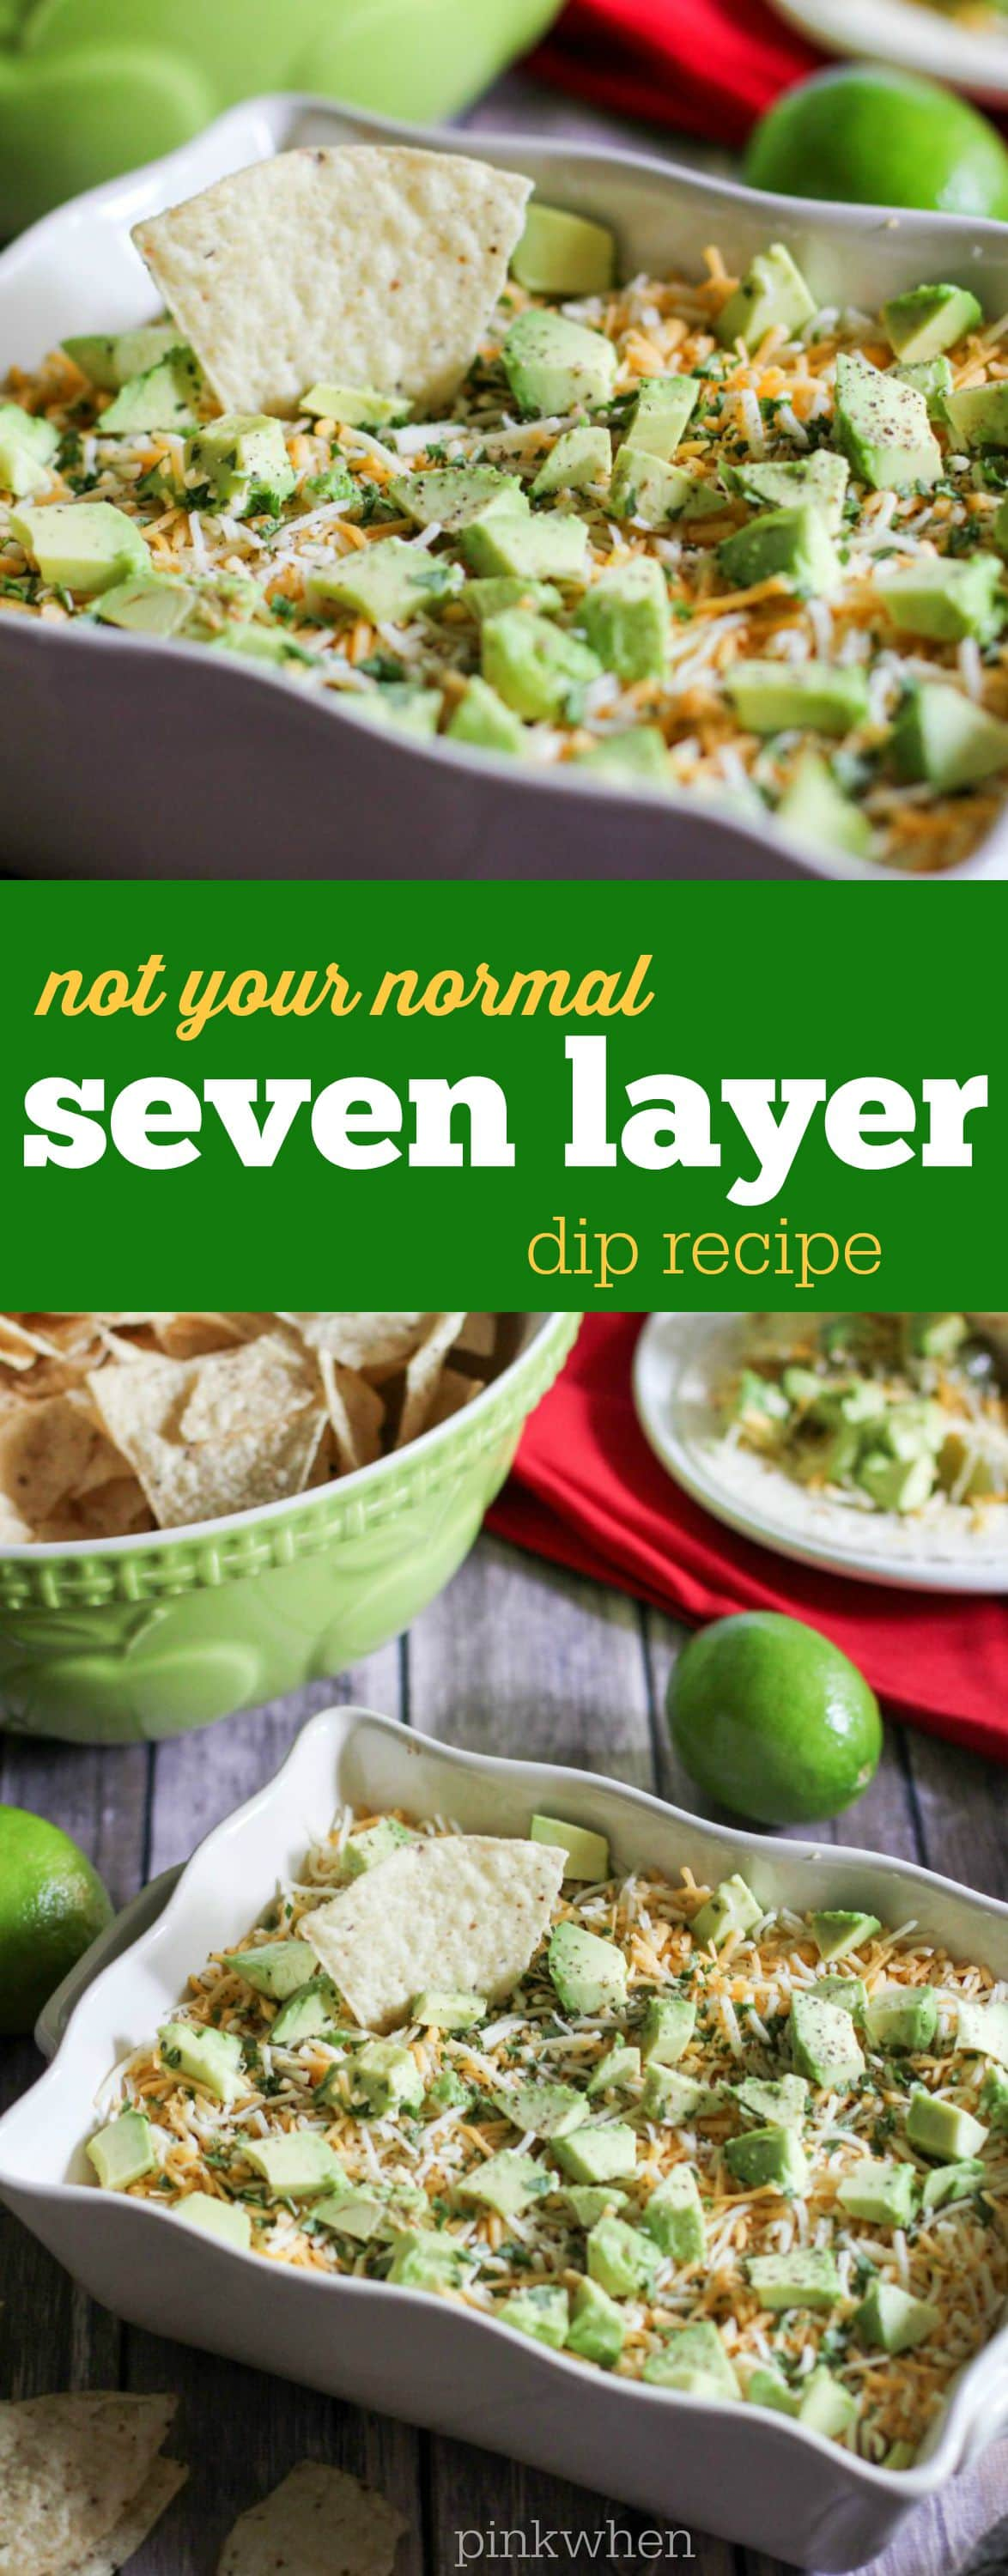 Not Your Normal Seven Later Dip Recipe | PinkWhen